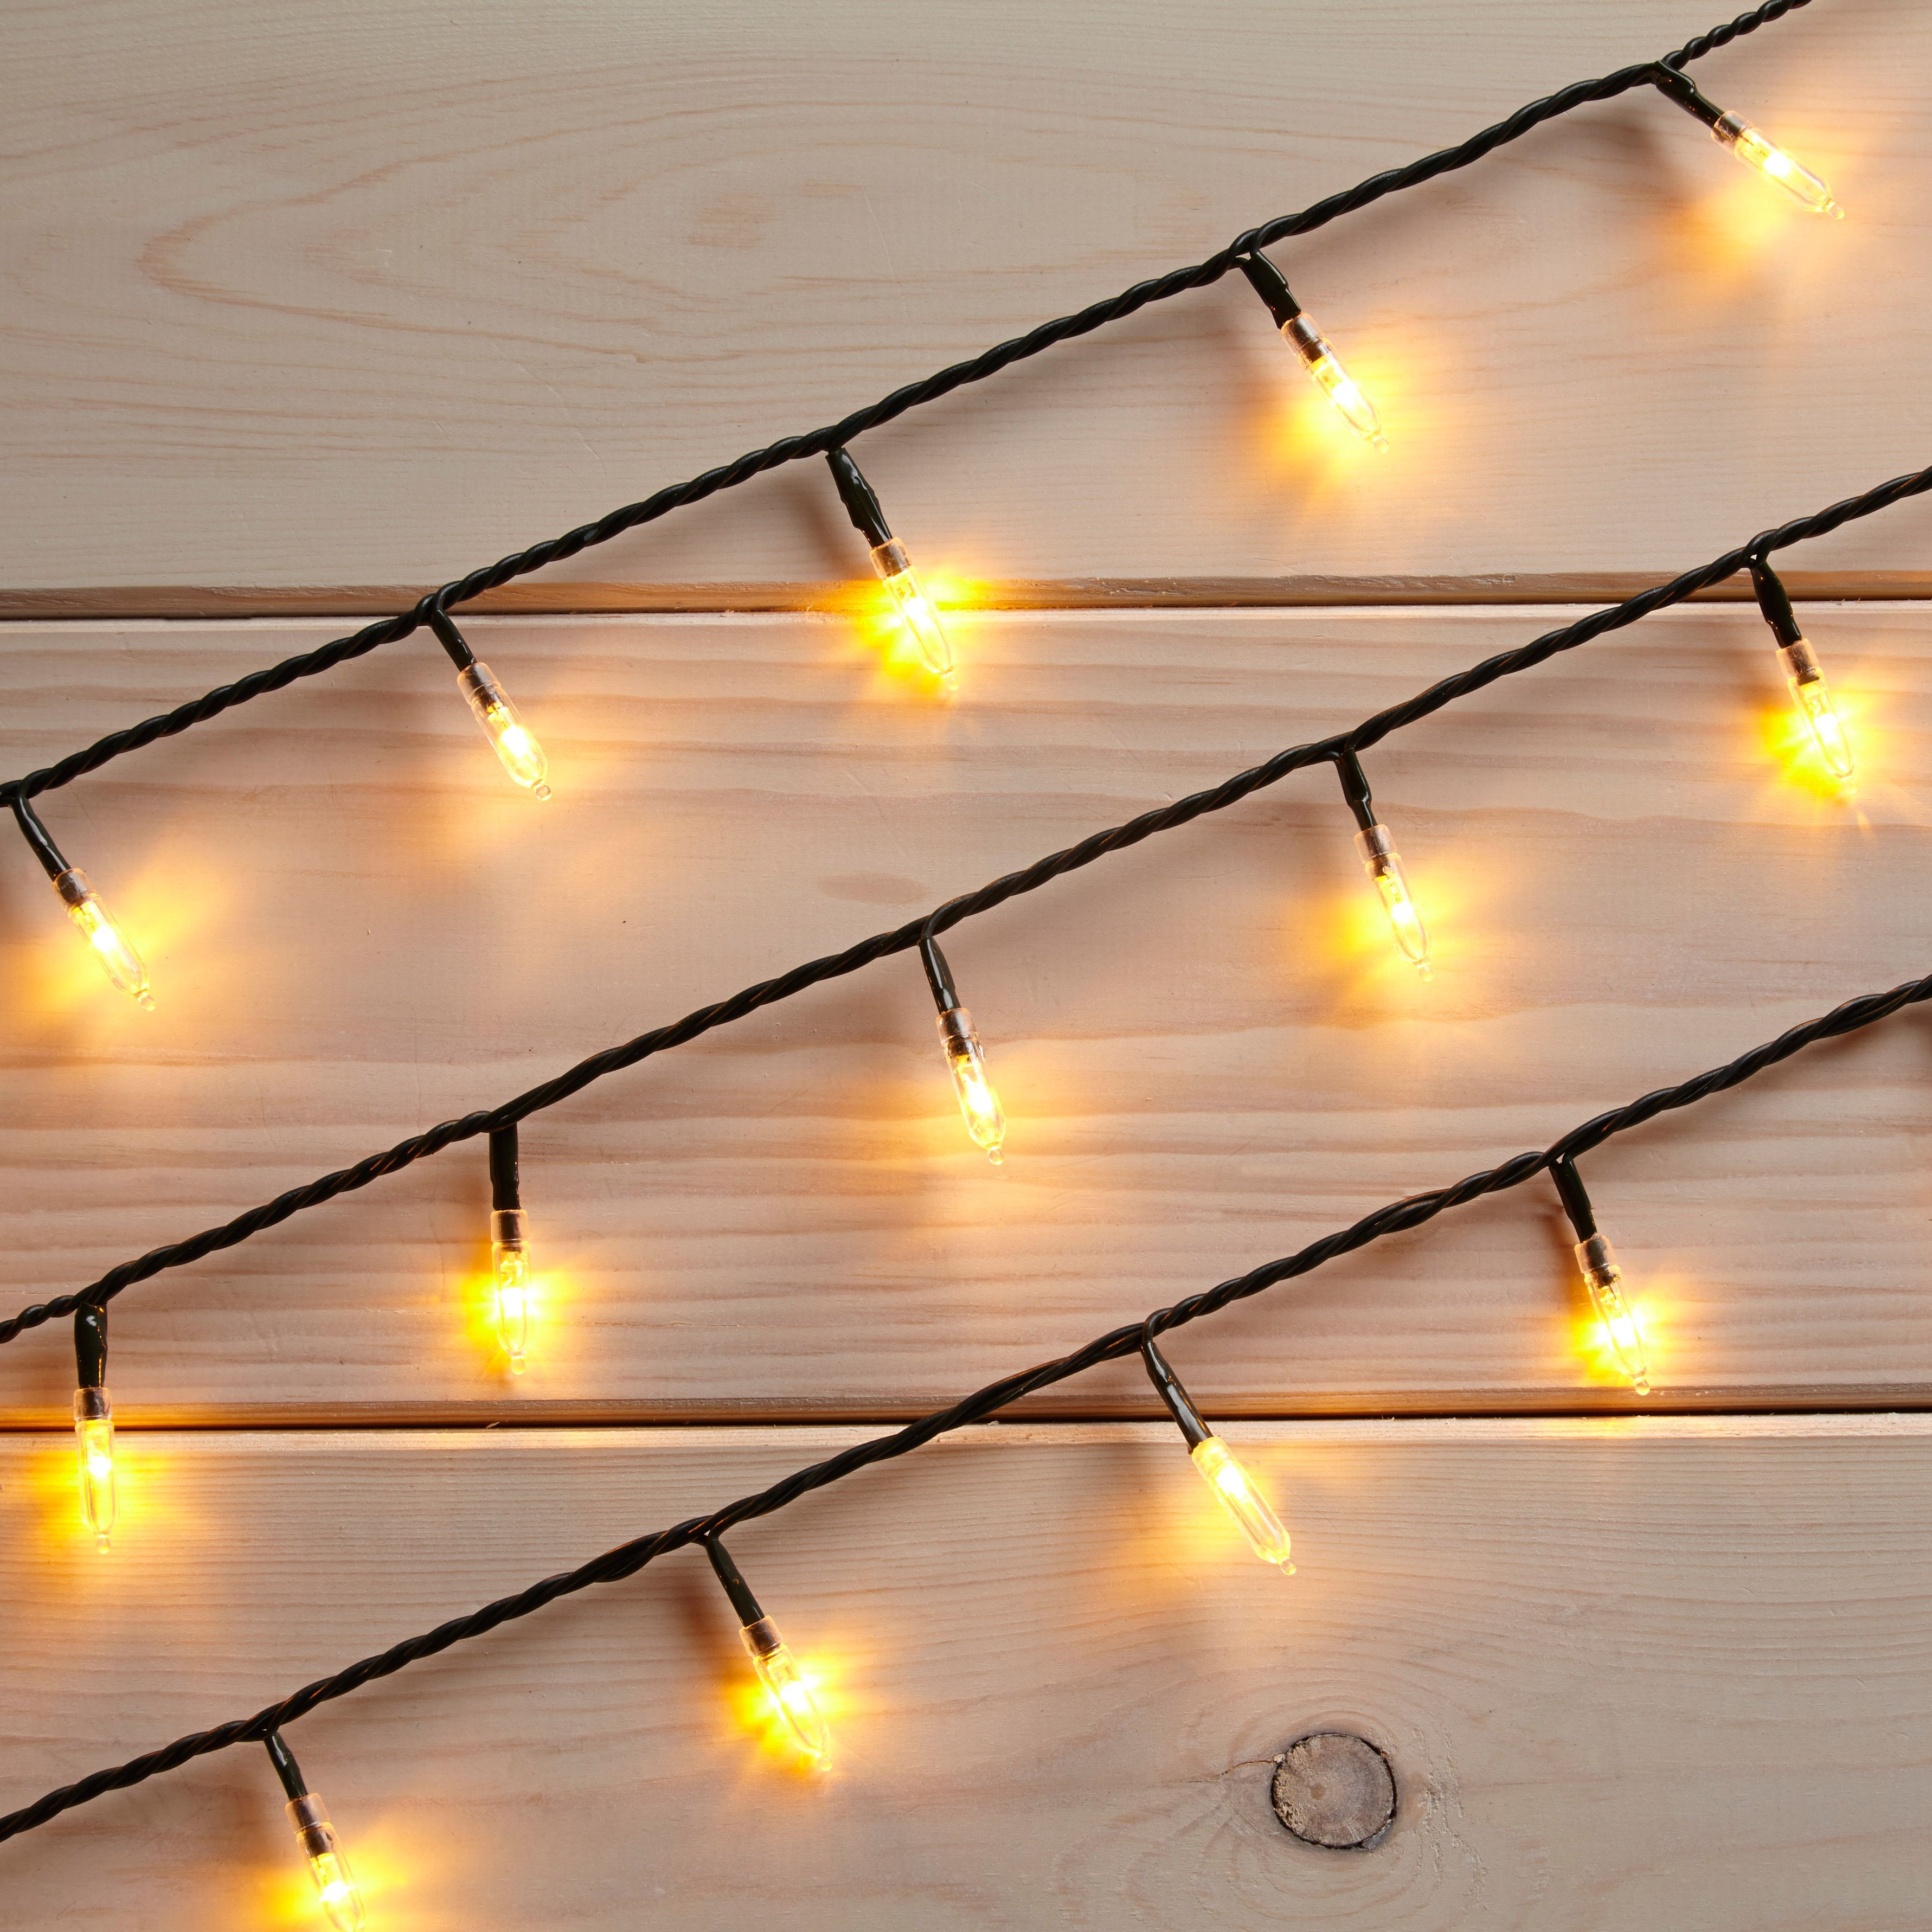 Diy Construction String Lights : 100 White LED Fairy String Lights Departments DIY at B&Q